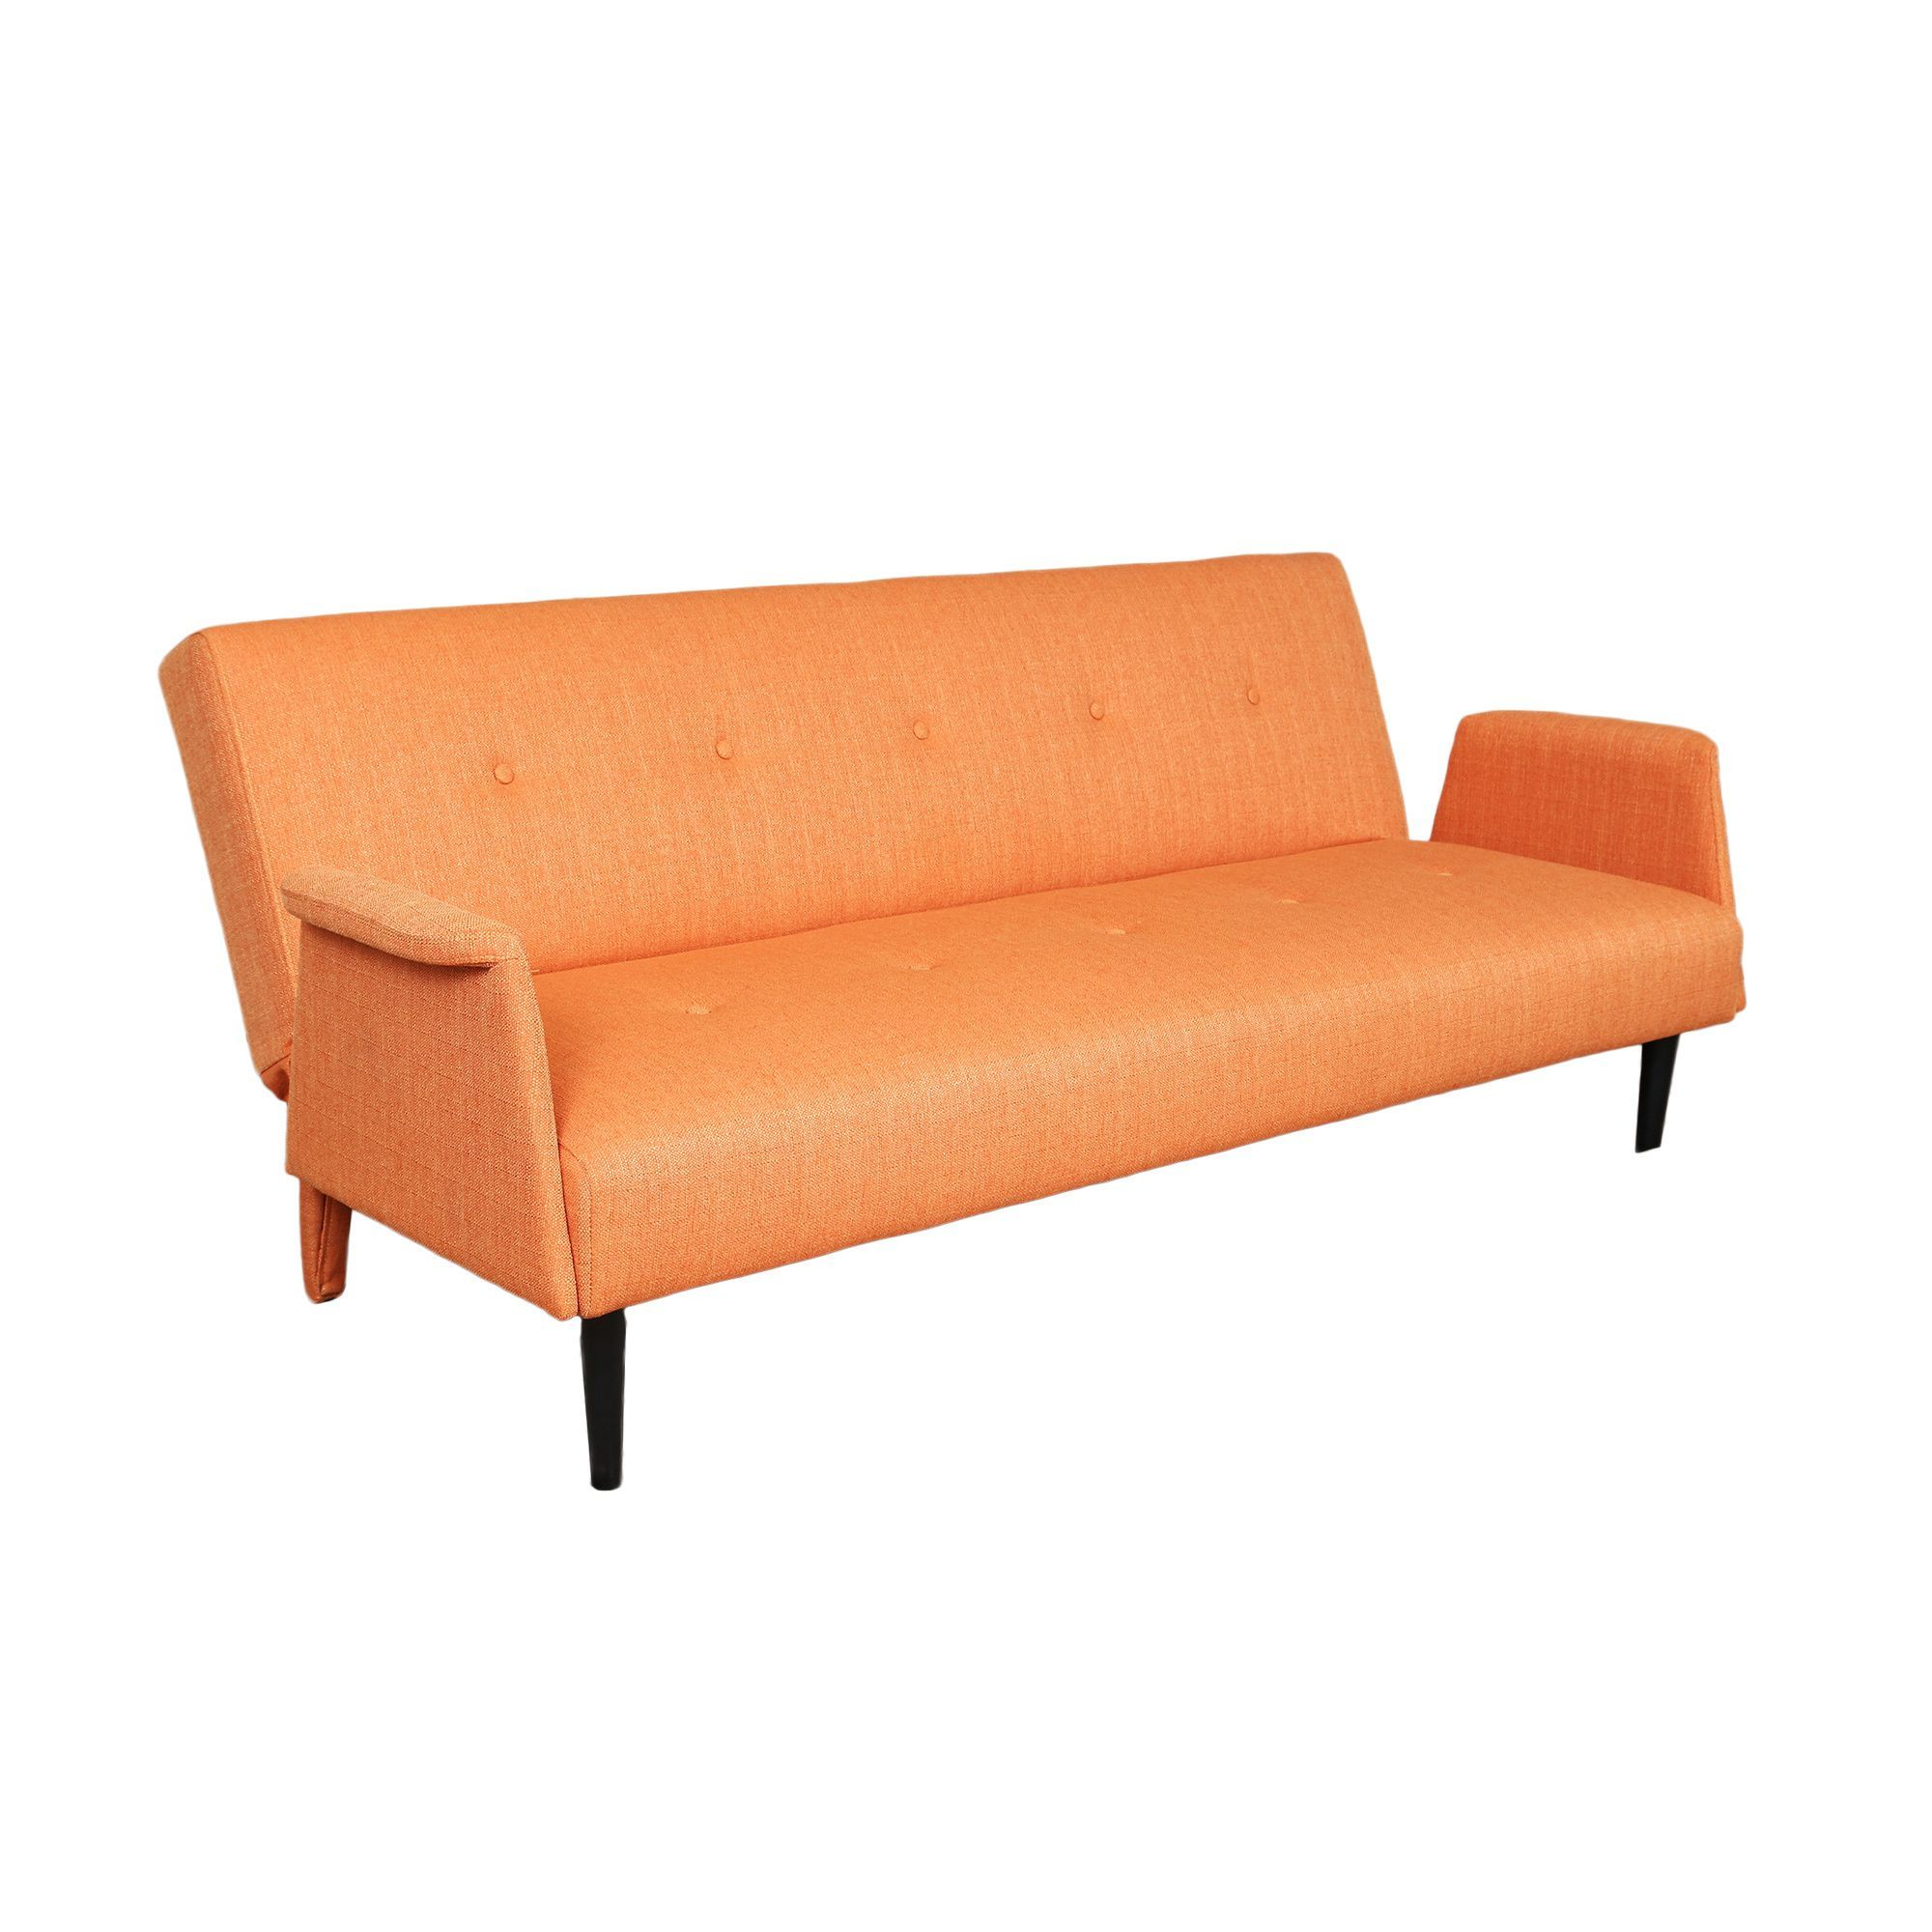 Porter International Designs Sitswell Naomi Orange Futon Sofa Sleeper Bed Black